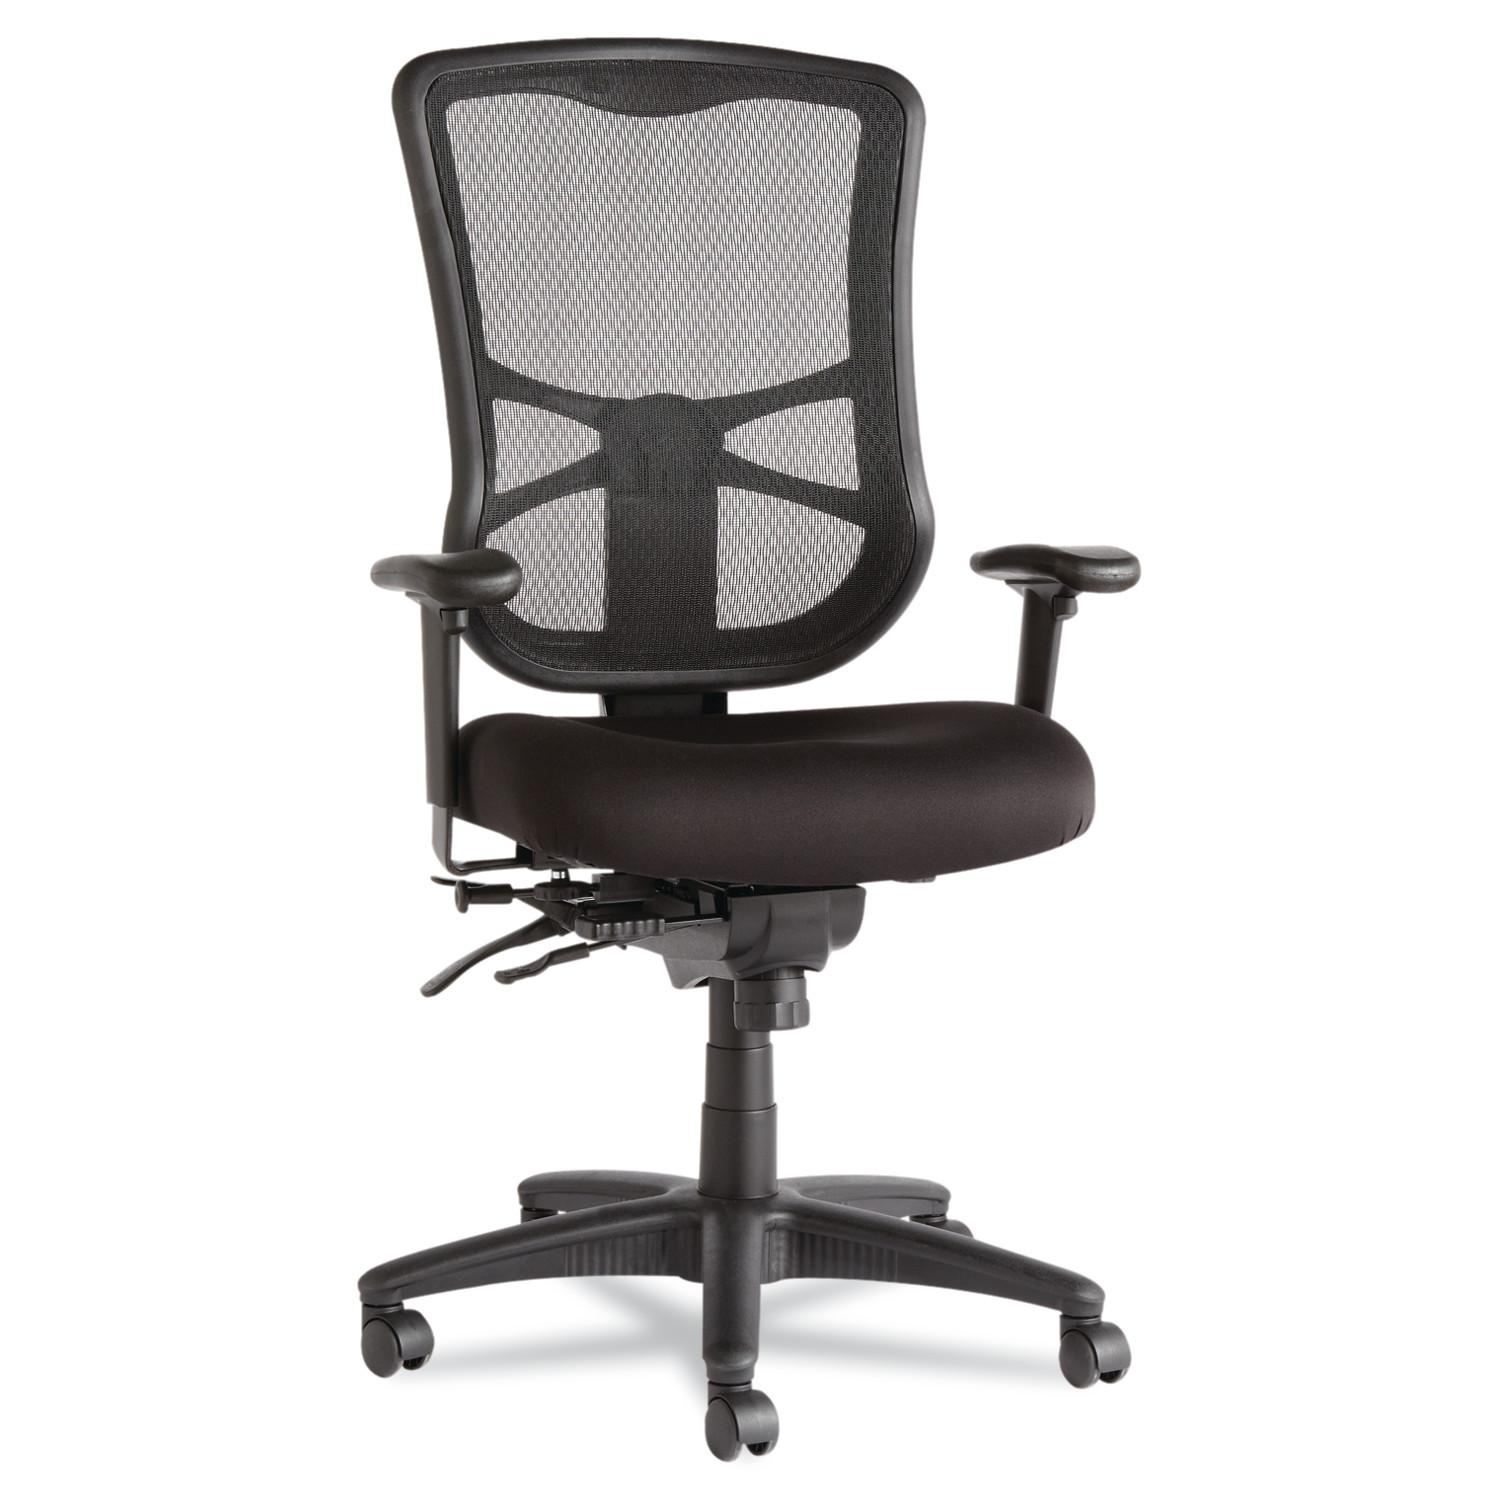 Alera Elusion Series Mesh High-Back Multifunction Office Chair for $134.41 Shipped